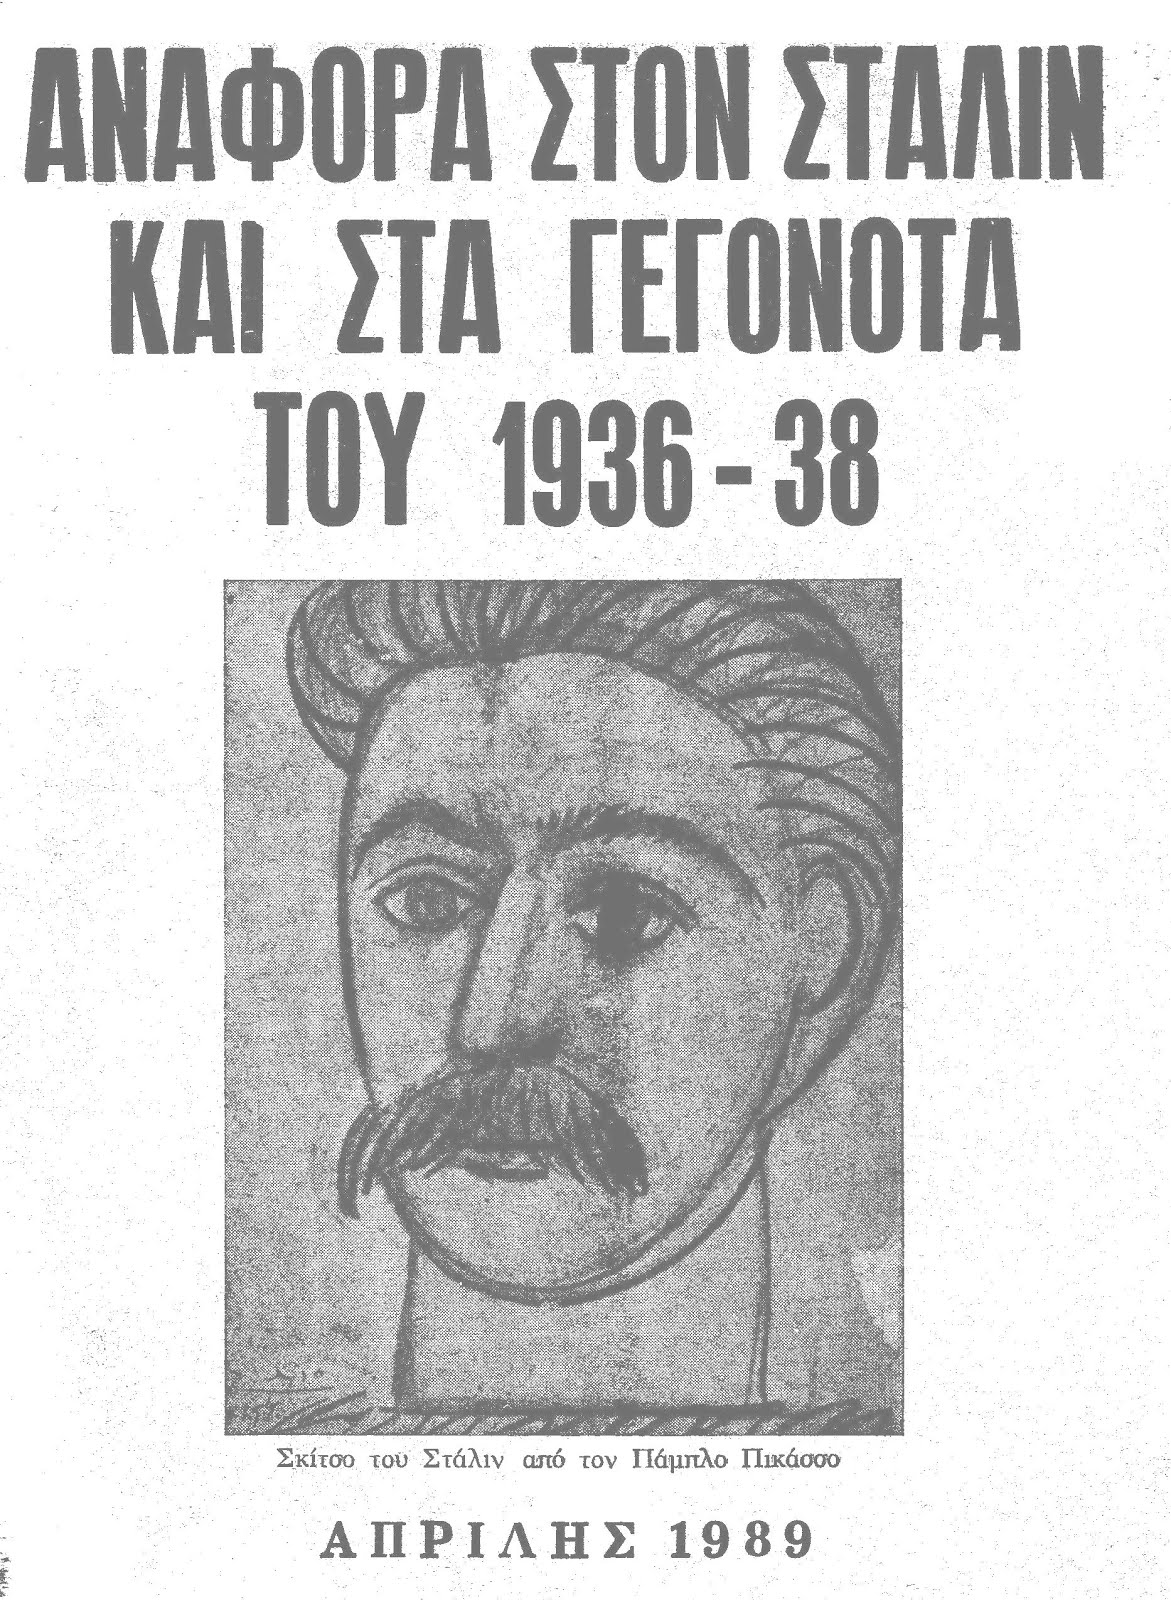 ΑΝΑΦΟΡΑ ΣΤΟΝ ΣΤΑΛΙΝ ΚΑΙ ΣΤΑ ΓΕΓΟΝΟΤΑ ΤΟΥ 1936-38